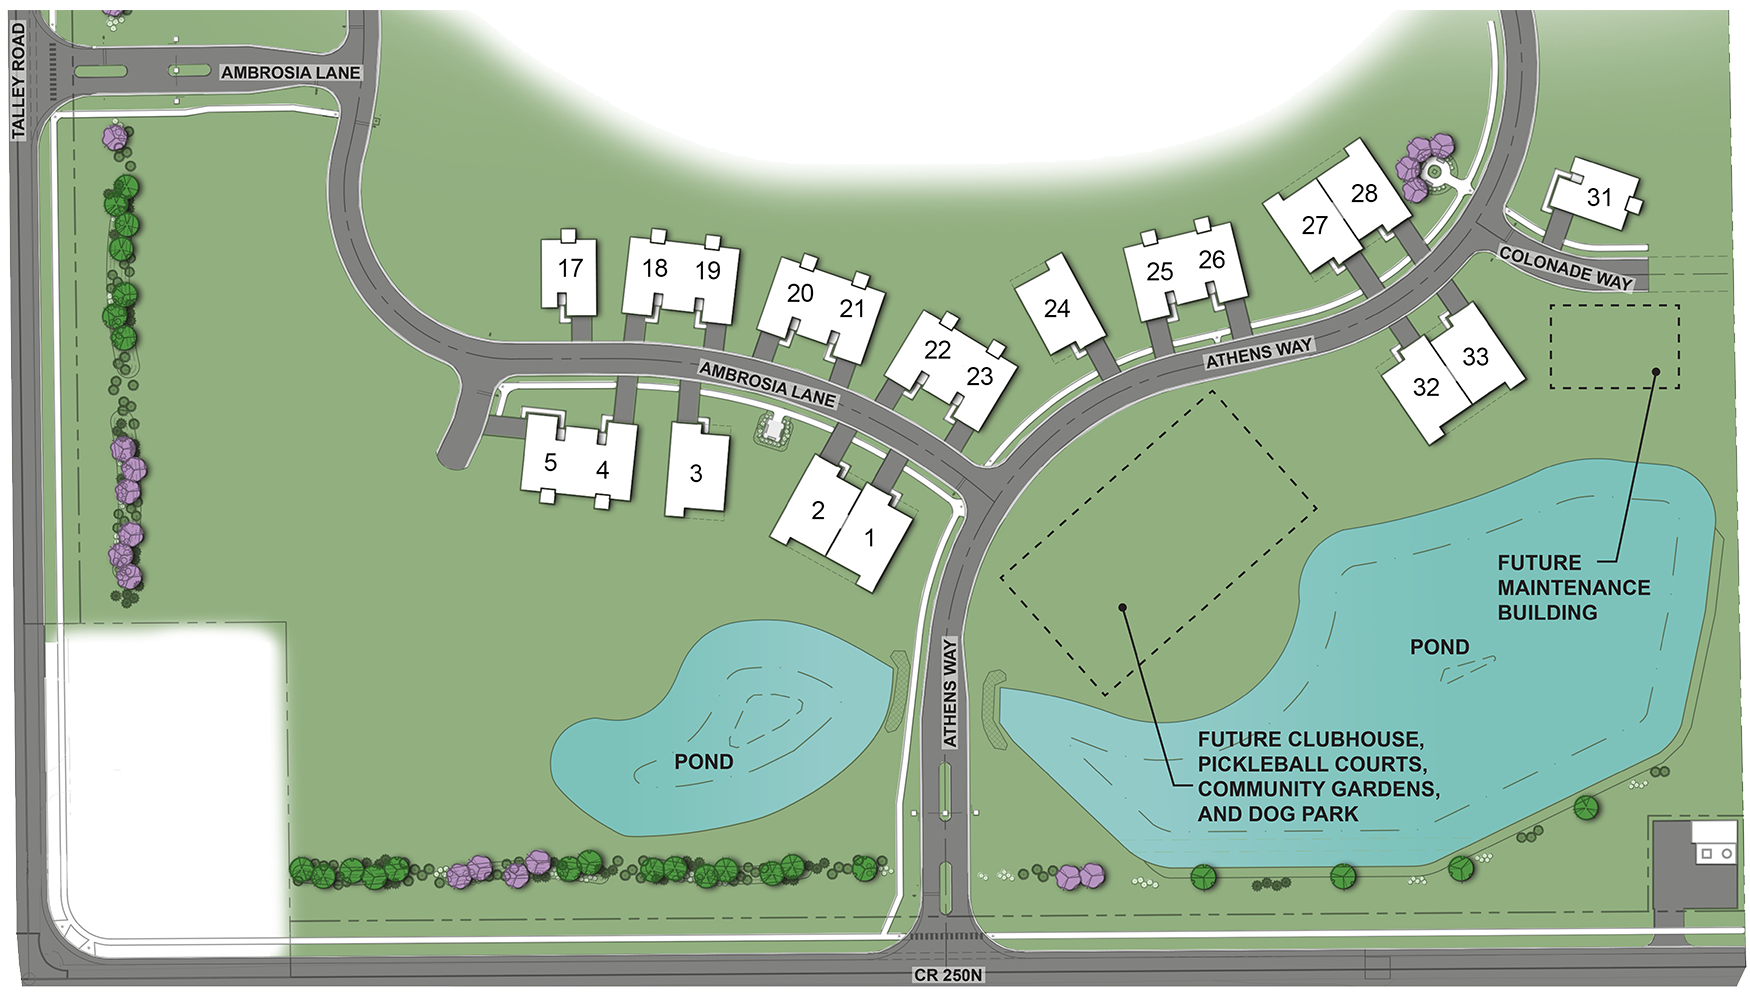 * This is a proposed site plan for phase one of development and is subject to change.